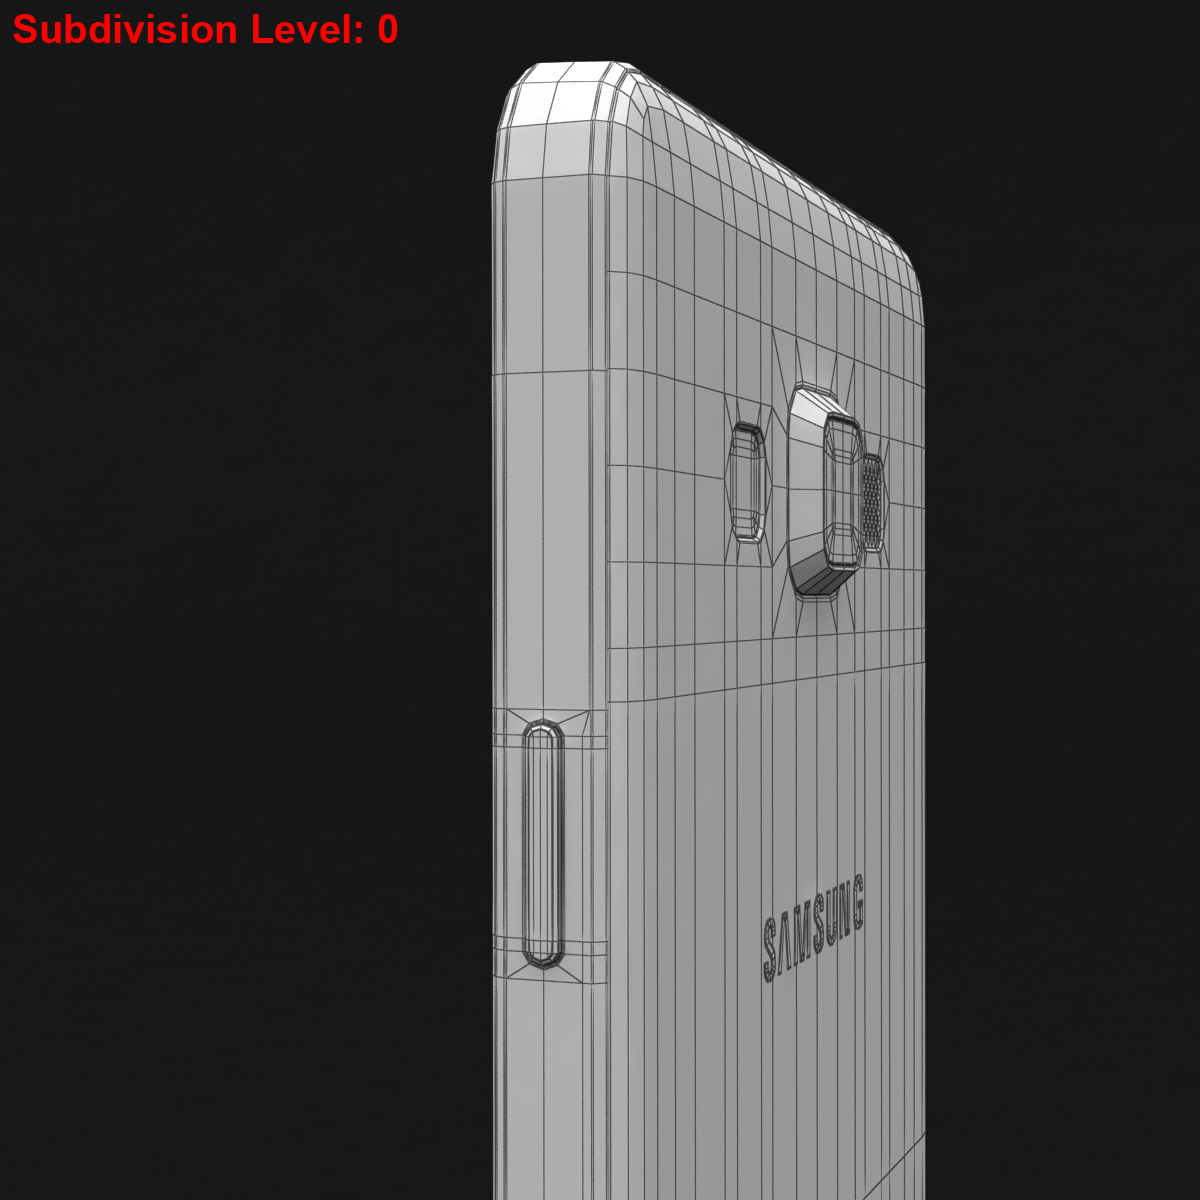 samsung galaxy a3 and a3 duos silver 3d model 3ds max fbx c4d obj 208331